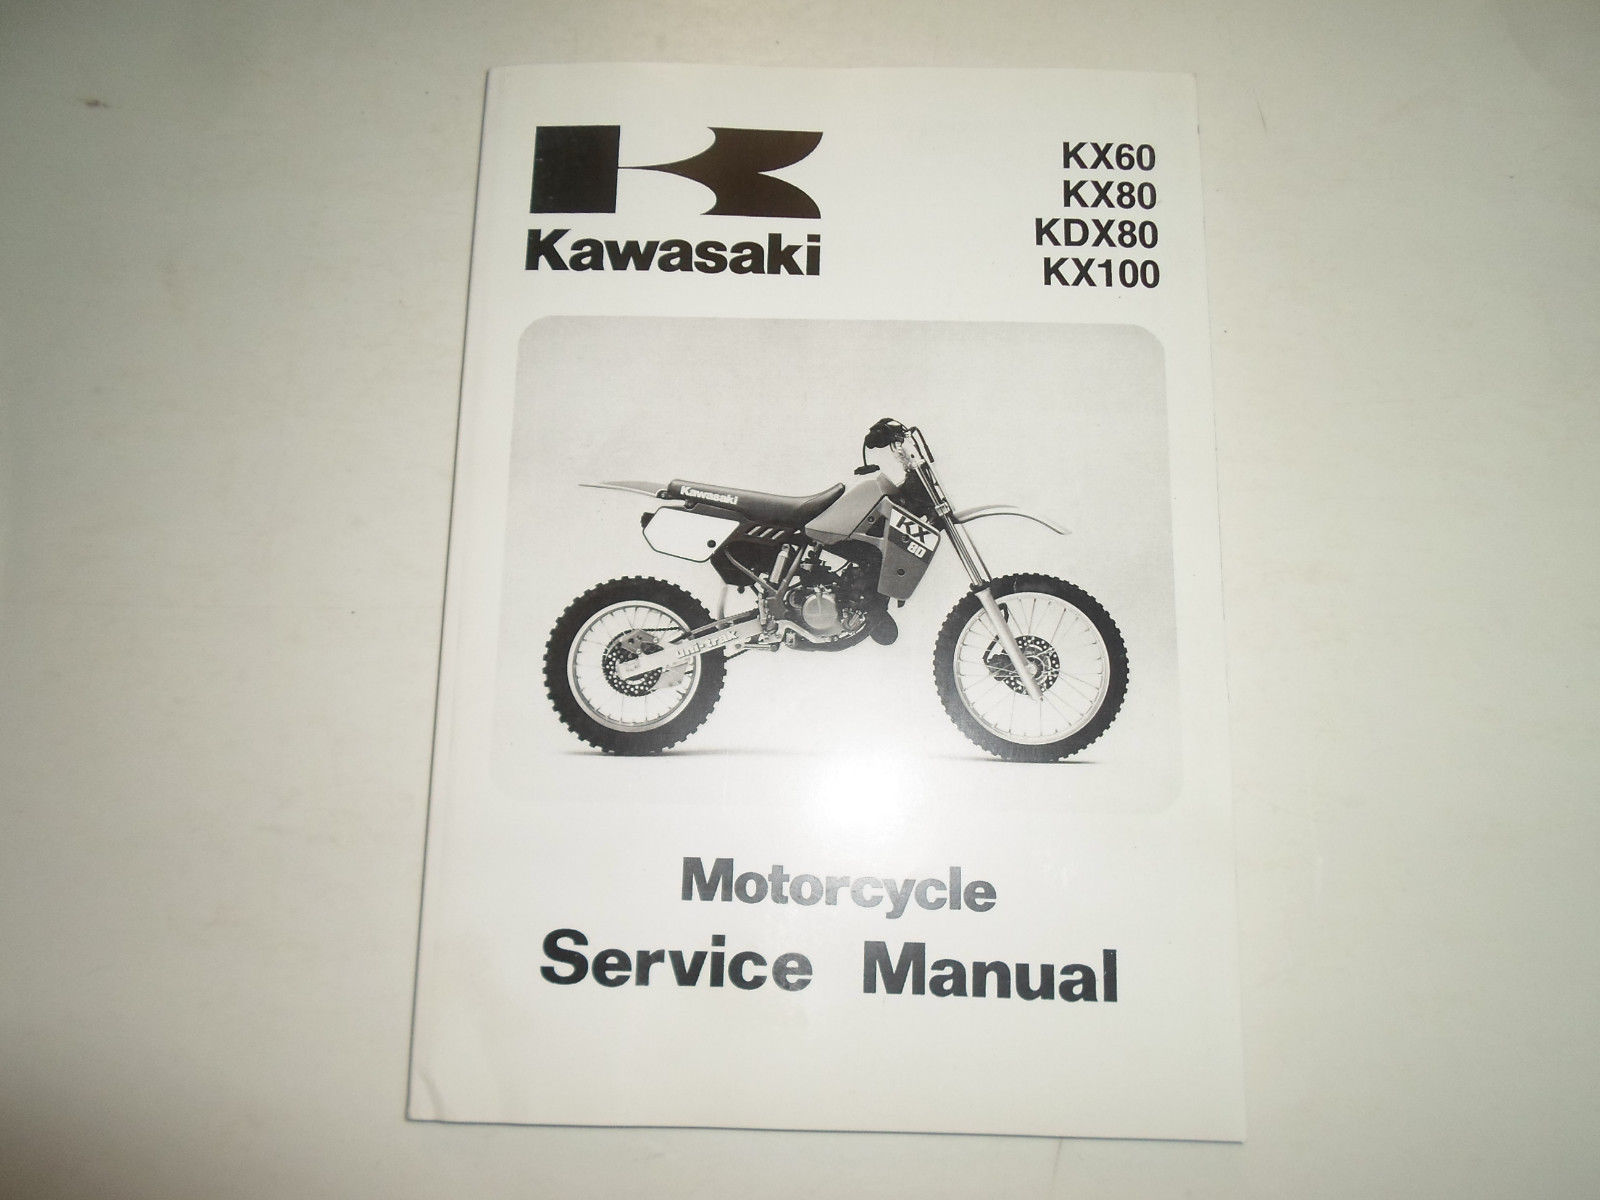 1988 2004 Kawasaki KX60 KX80 KDX80 KX100 Service Repair Shop Manual MINOR  STAINS - $49.45